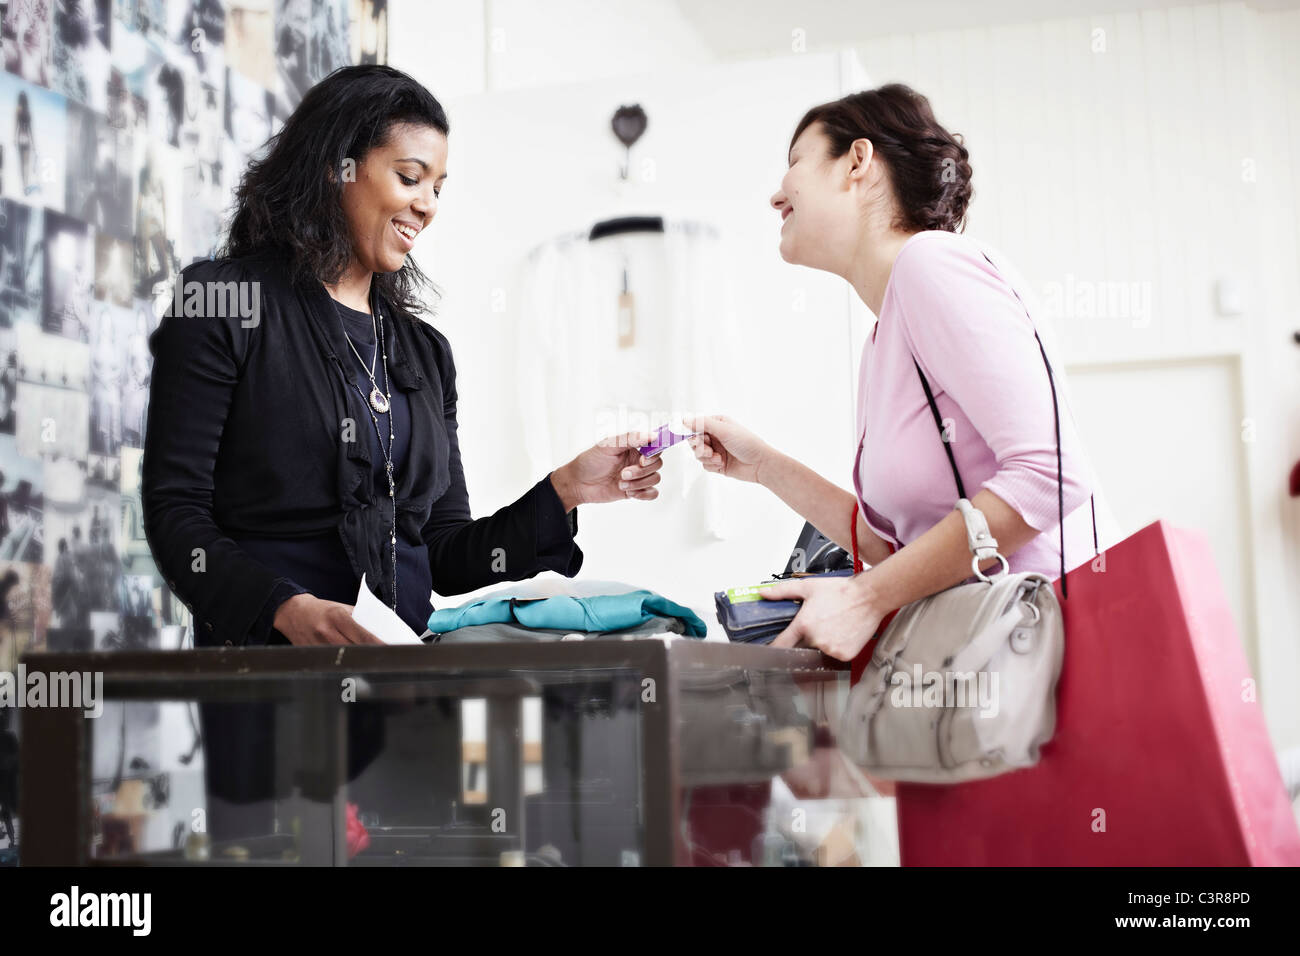 Paying with a card Stock Photo